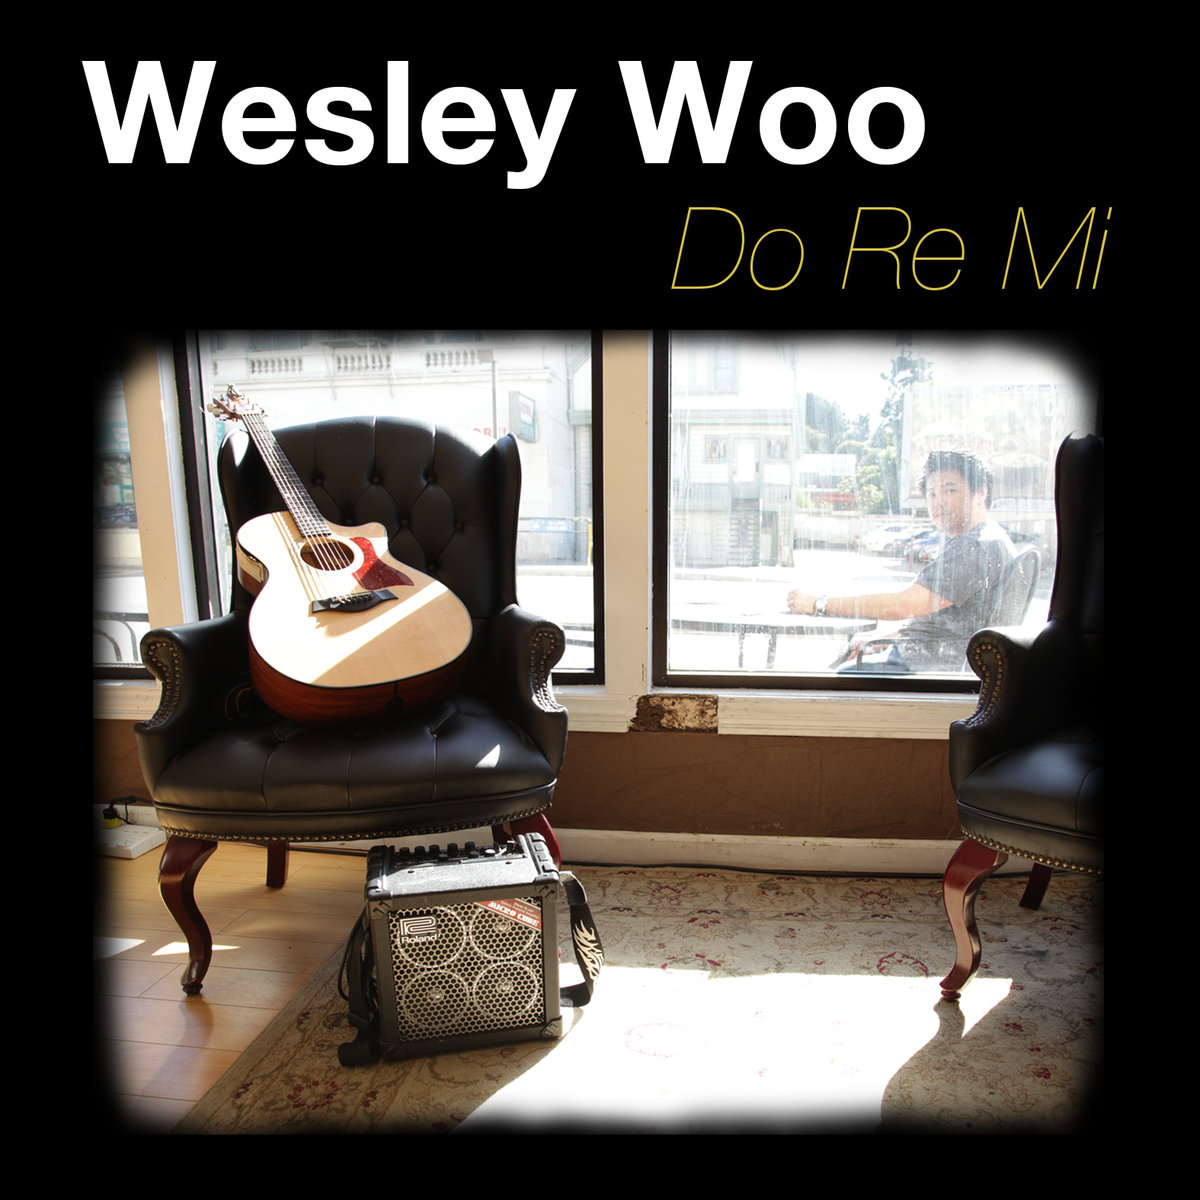 Wesley Woo - Live. Laugh. Love. @ 'Do Re Mi' album (11th ave records, 11th avenue records)